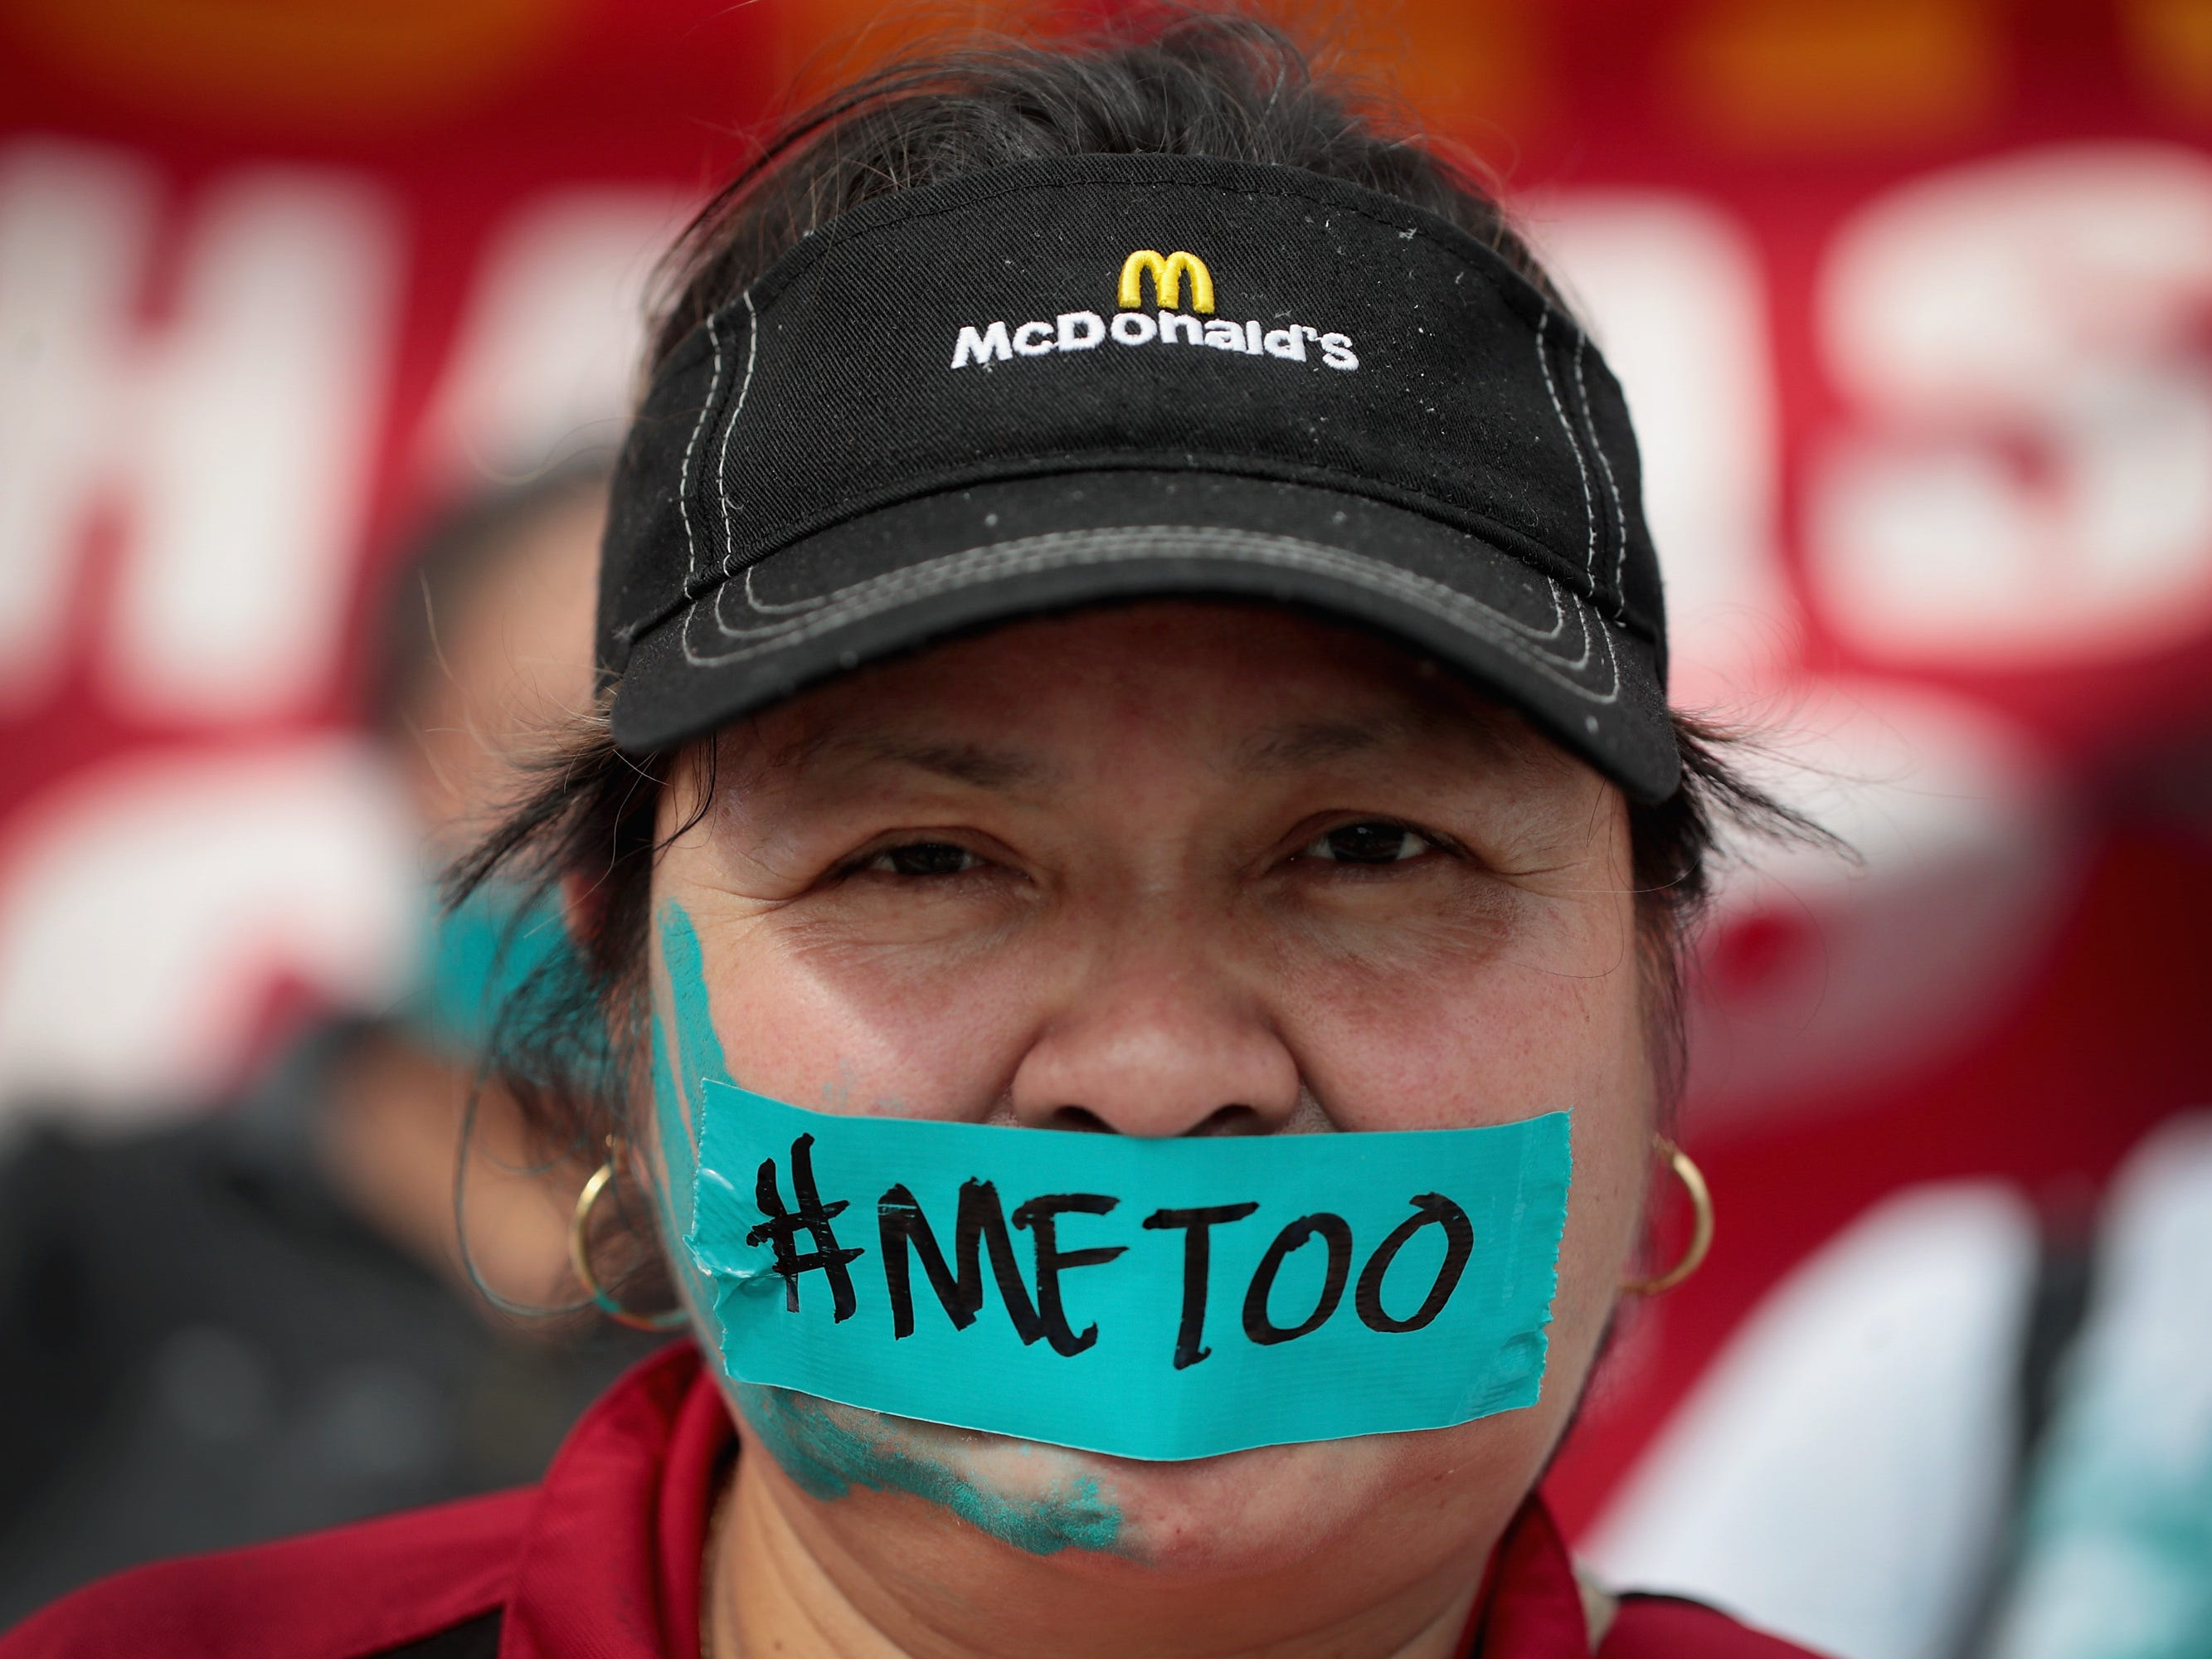 When will MeToo become WeToo? Some say voices of black women, working class left out